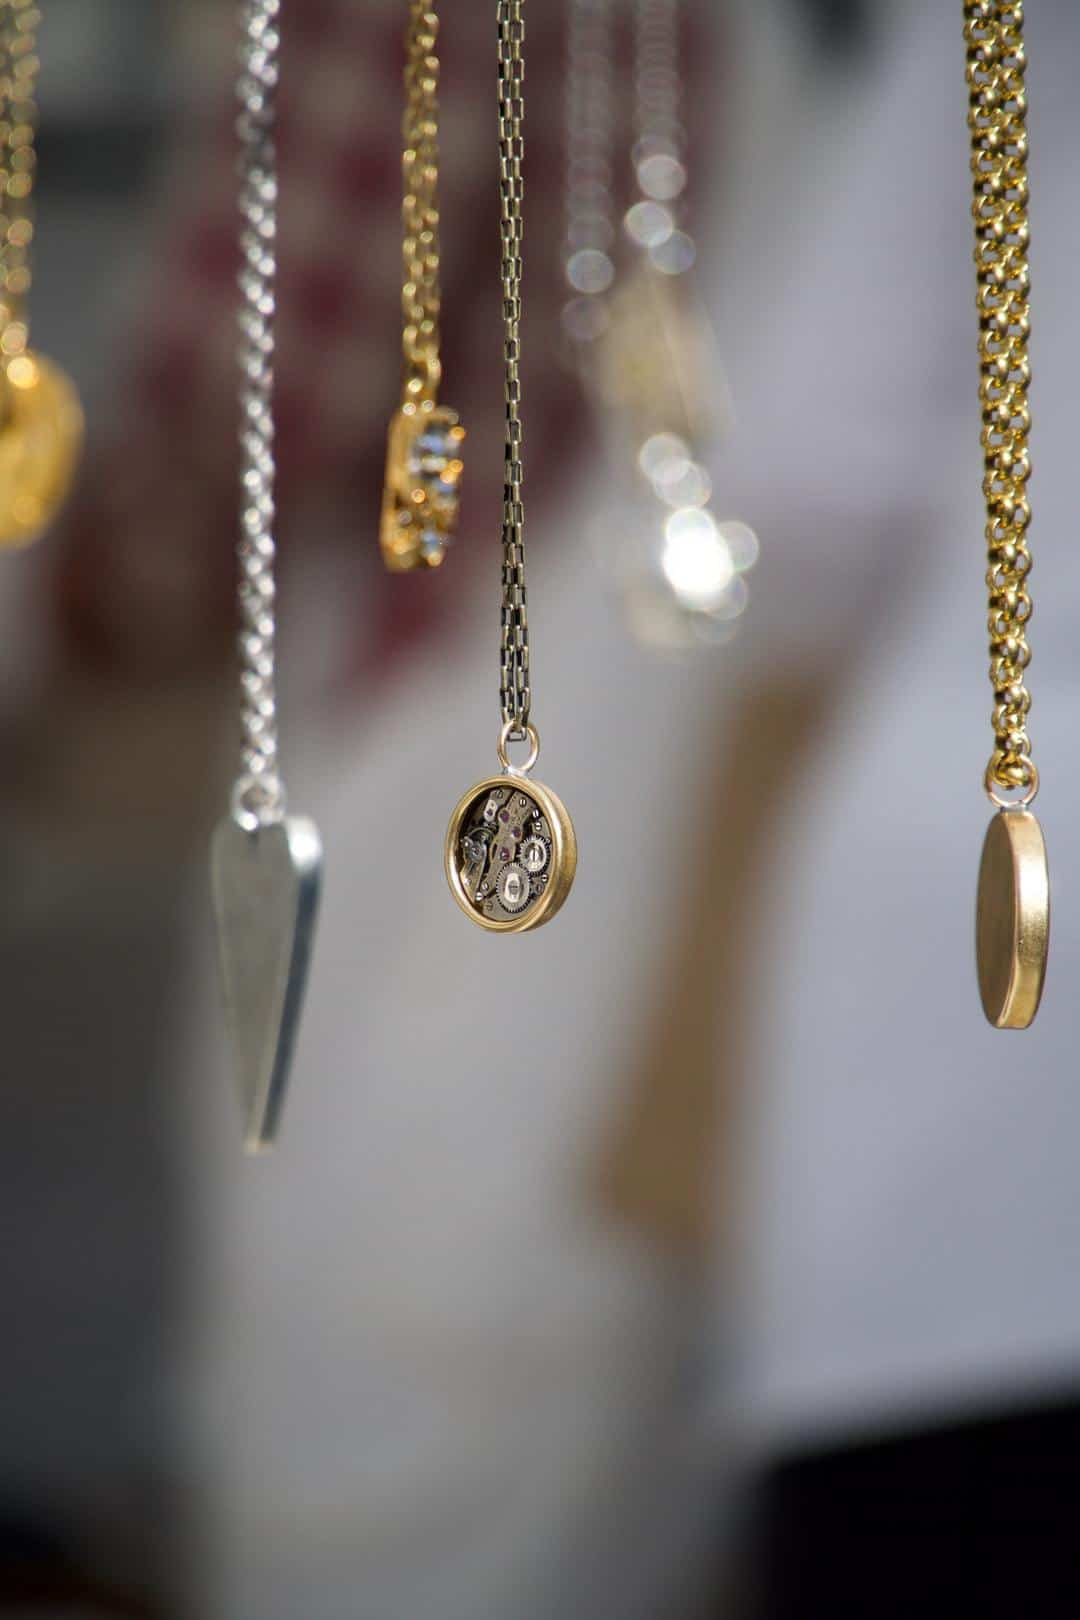 DIY: How to Become a Jewellery Maker in 5 Simple Steps